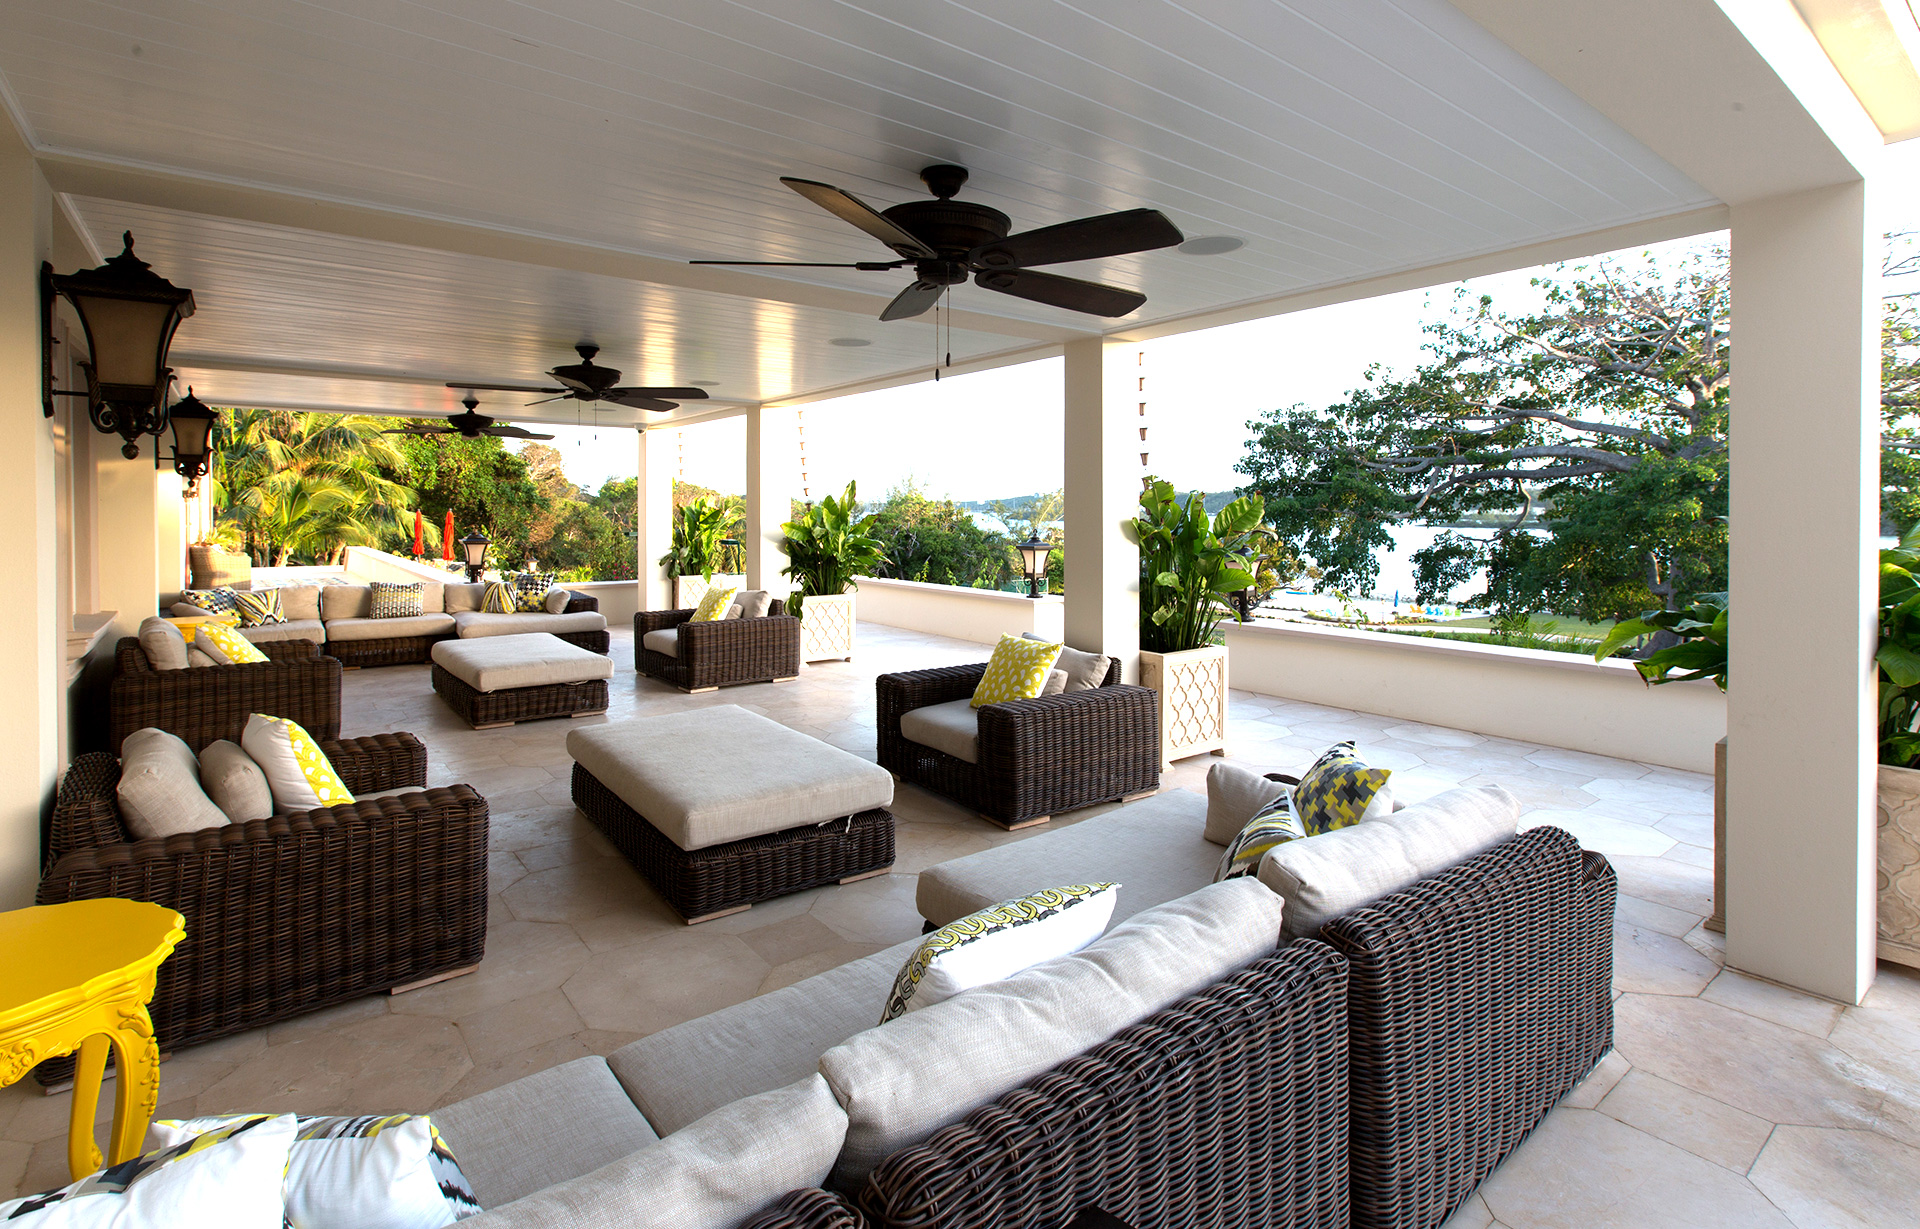 Immaculate Outdoor Living